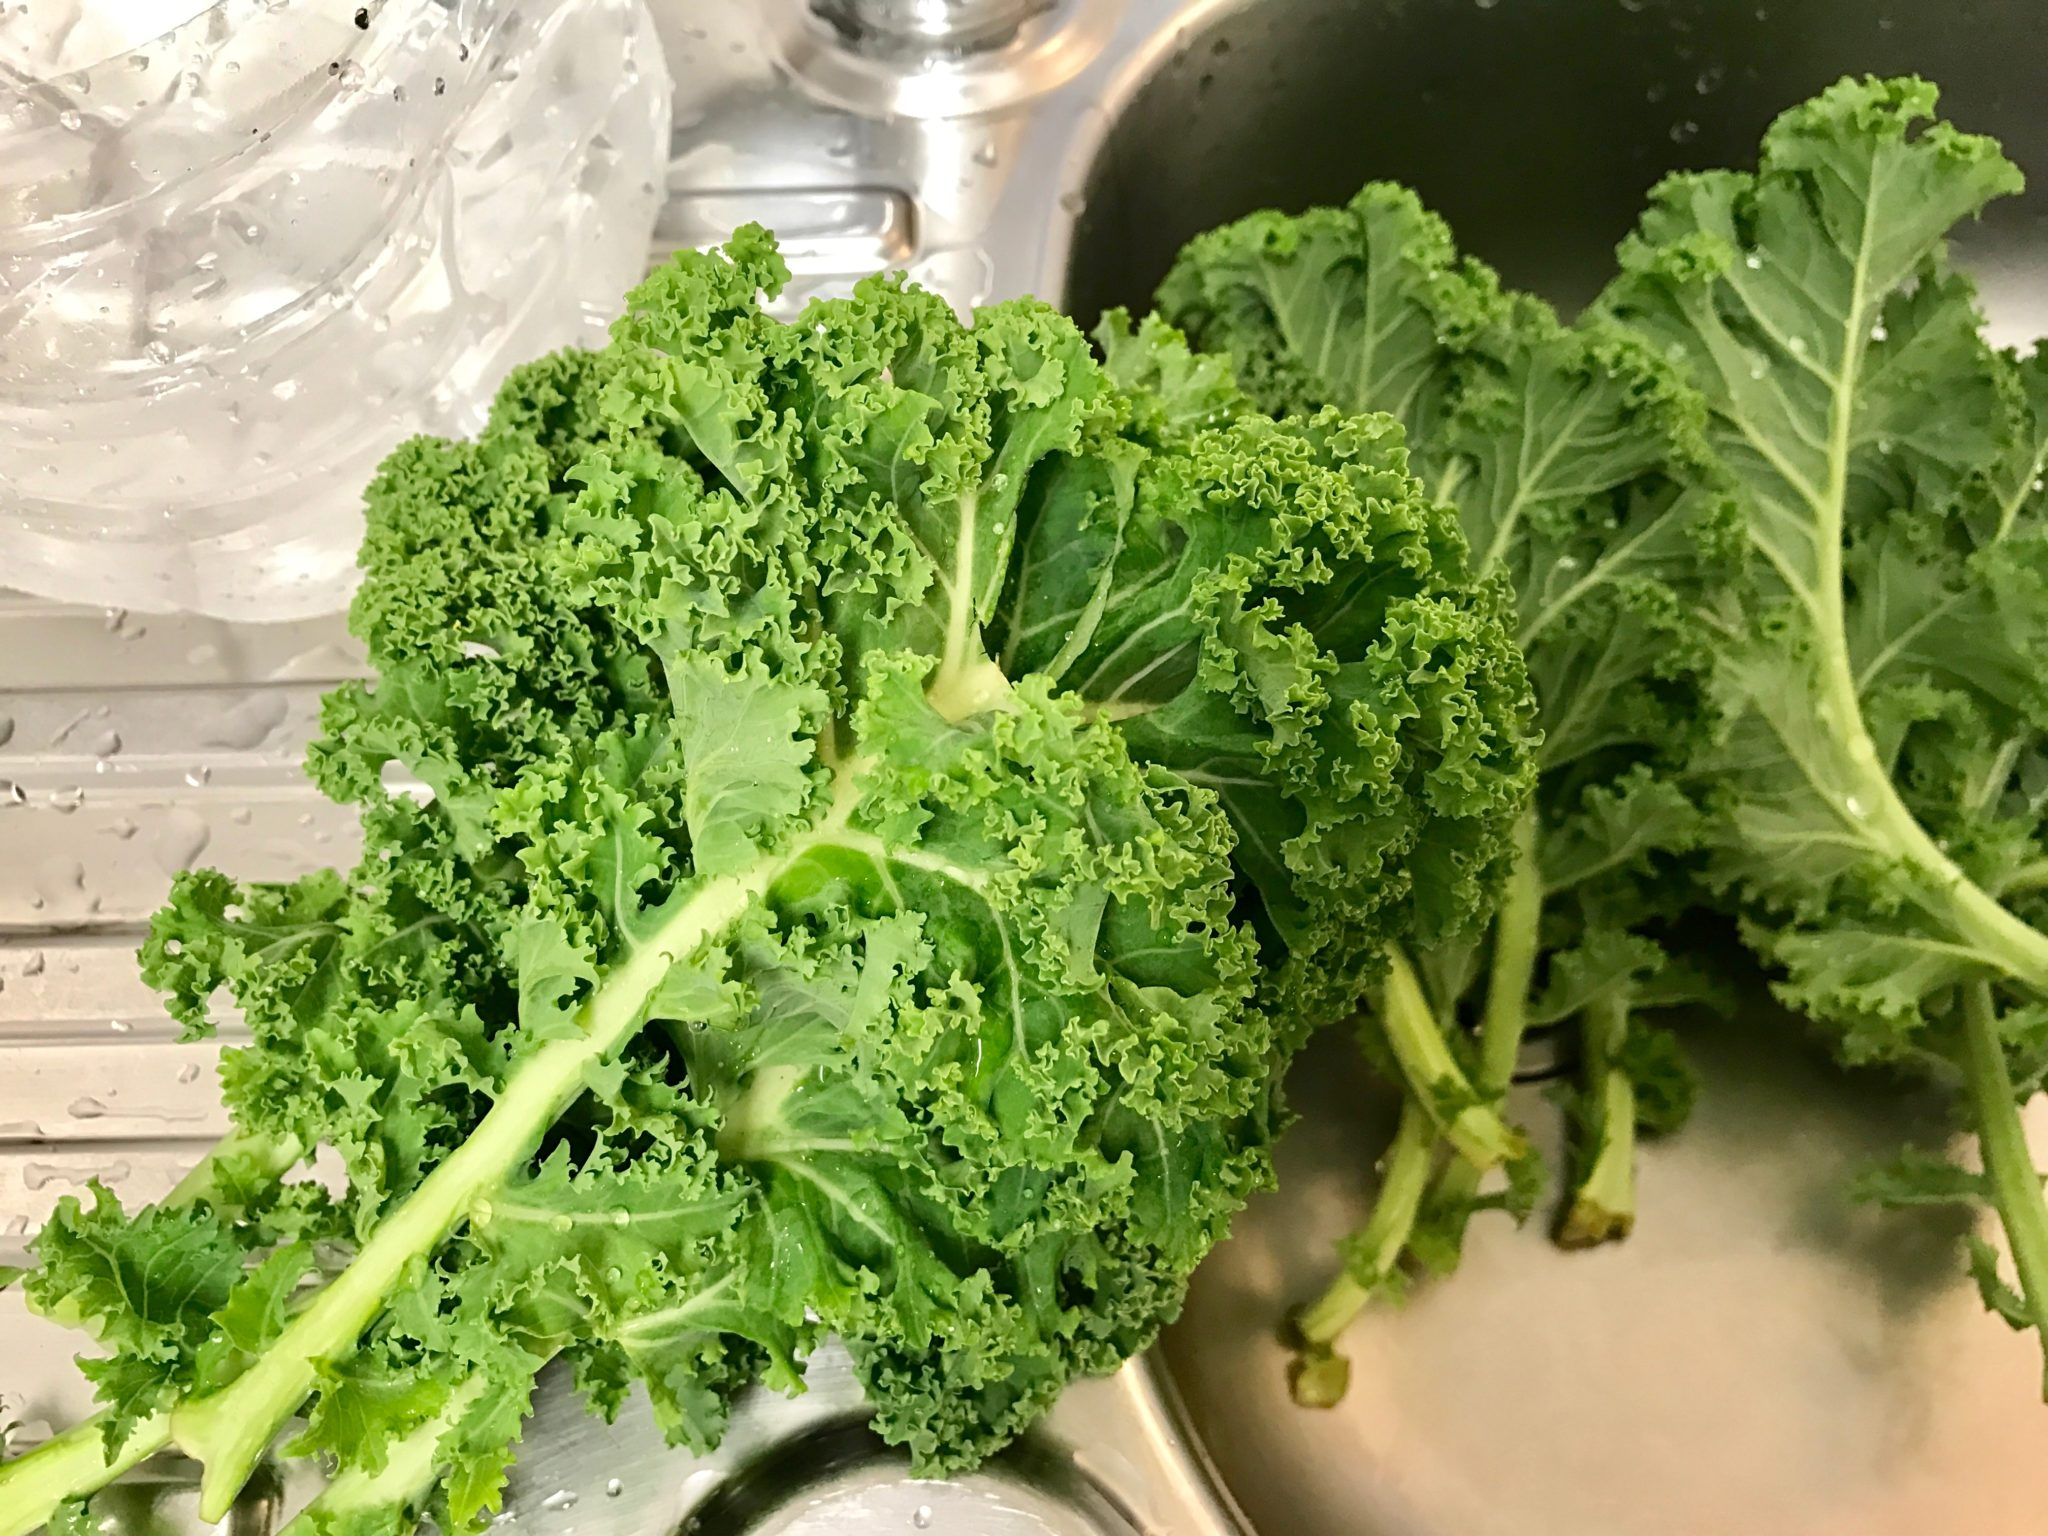 wash the kale thoroughly